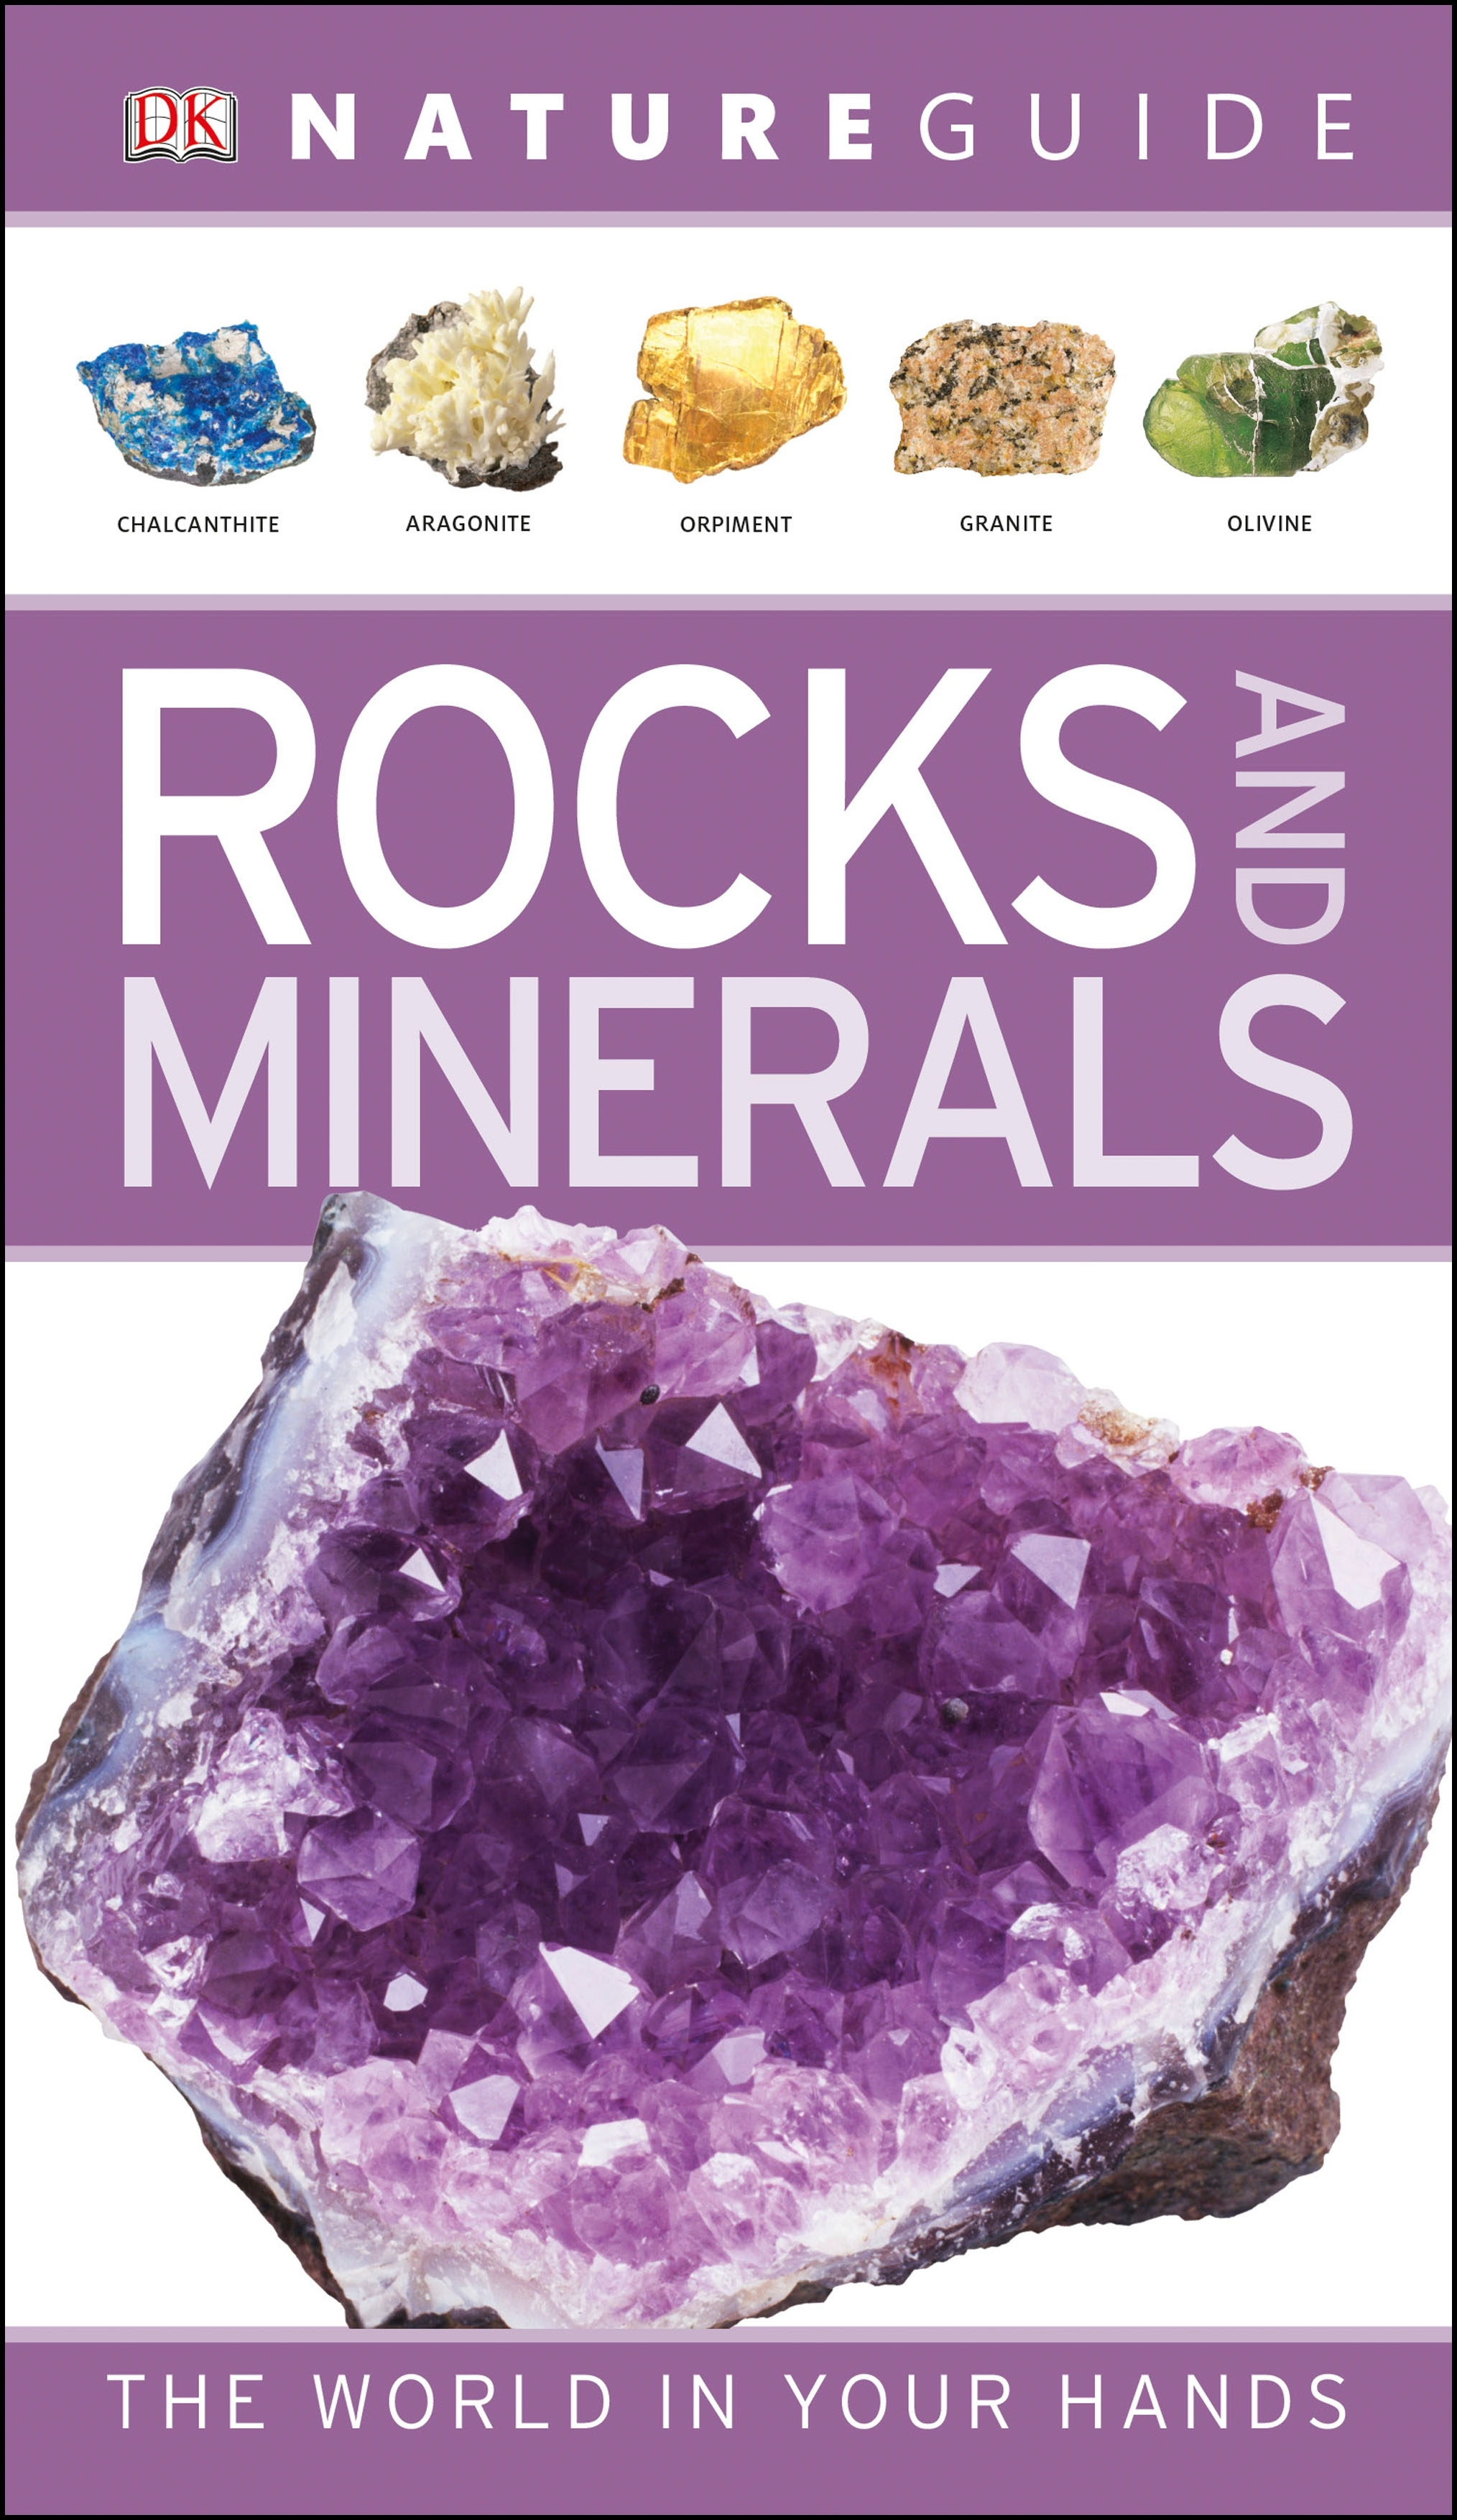 Nature Guide~ Rocks And Minerals by DK - Penguin Books Australia